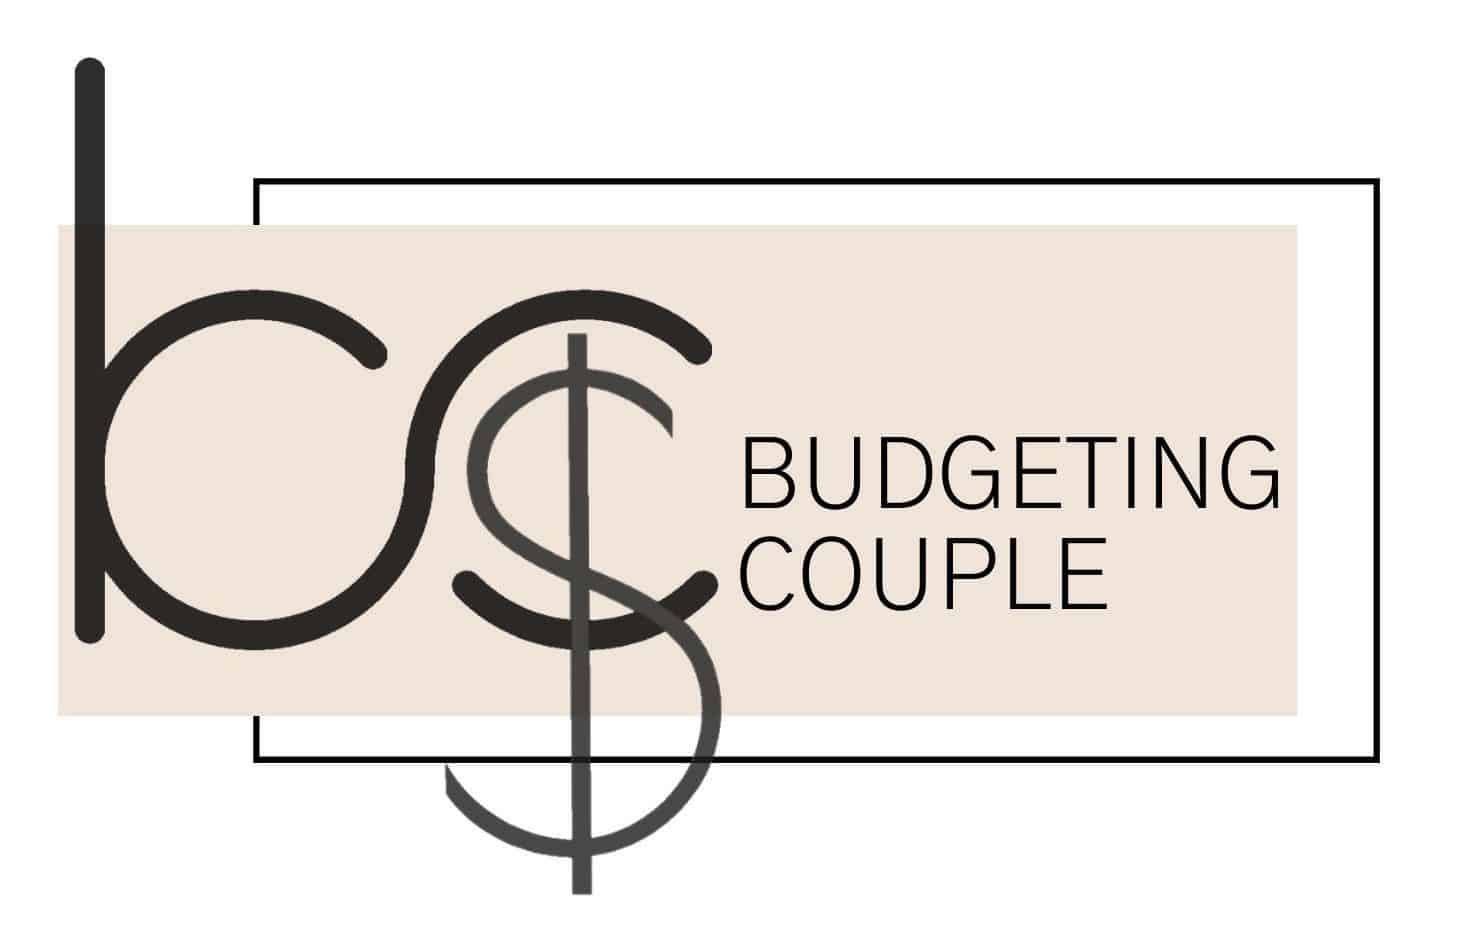 Budgeting Couple